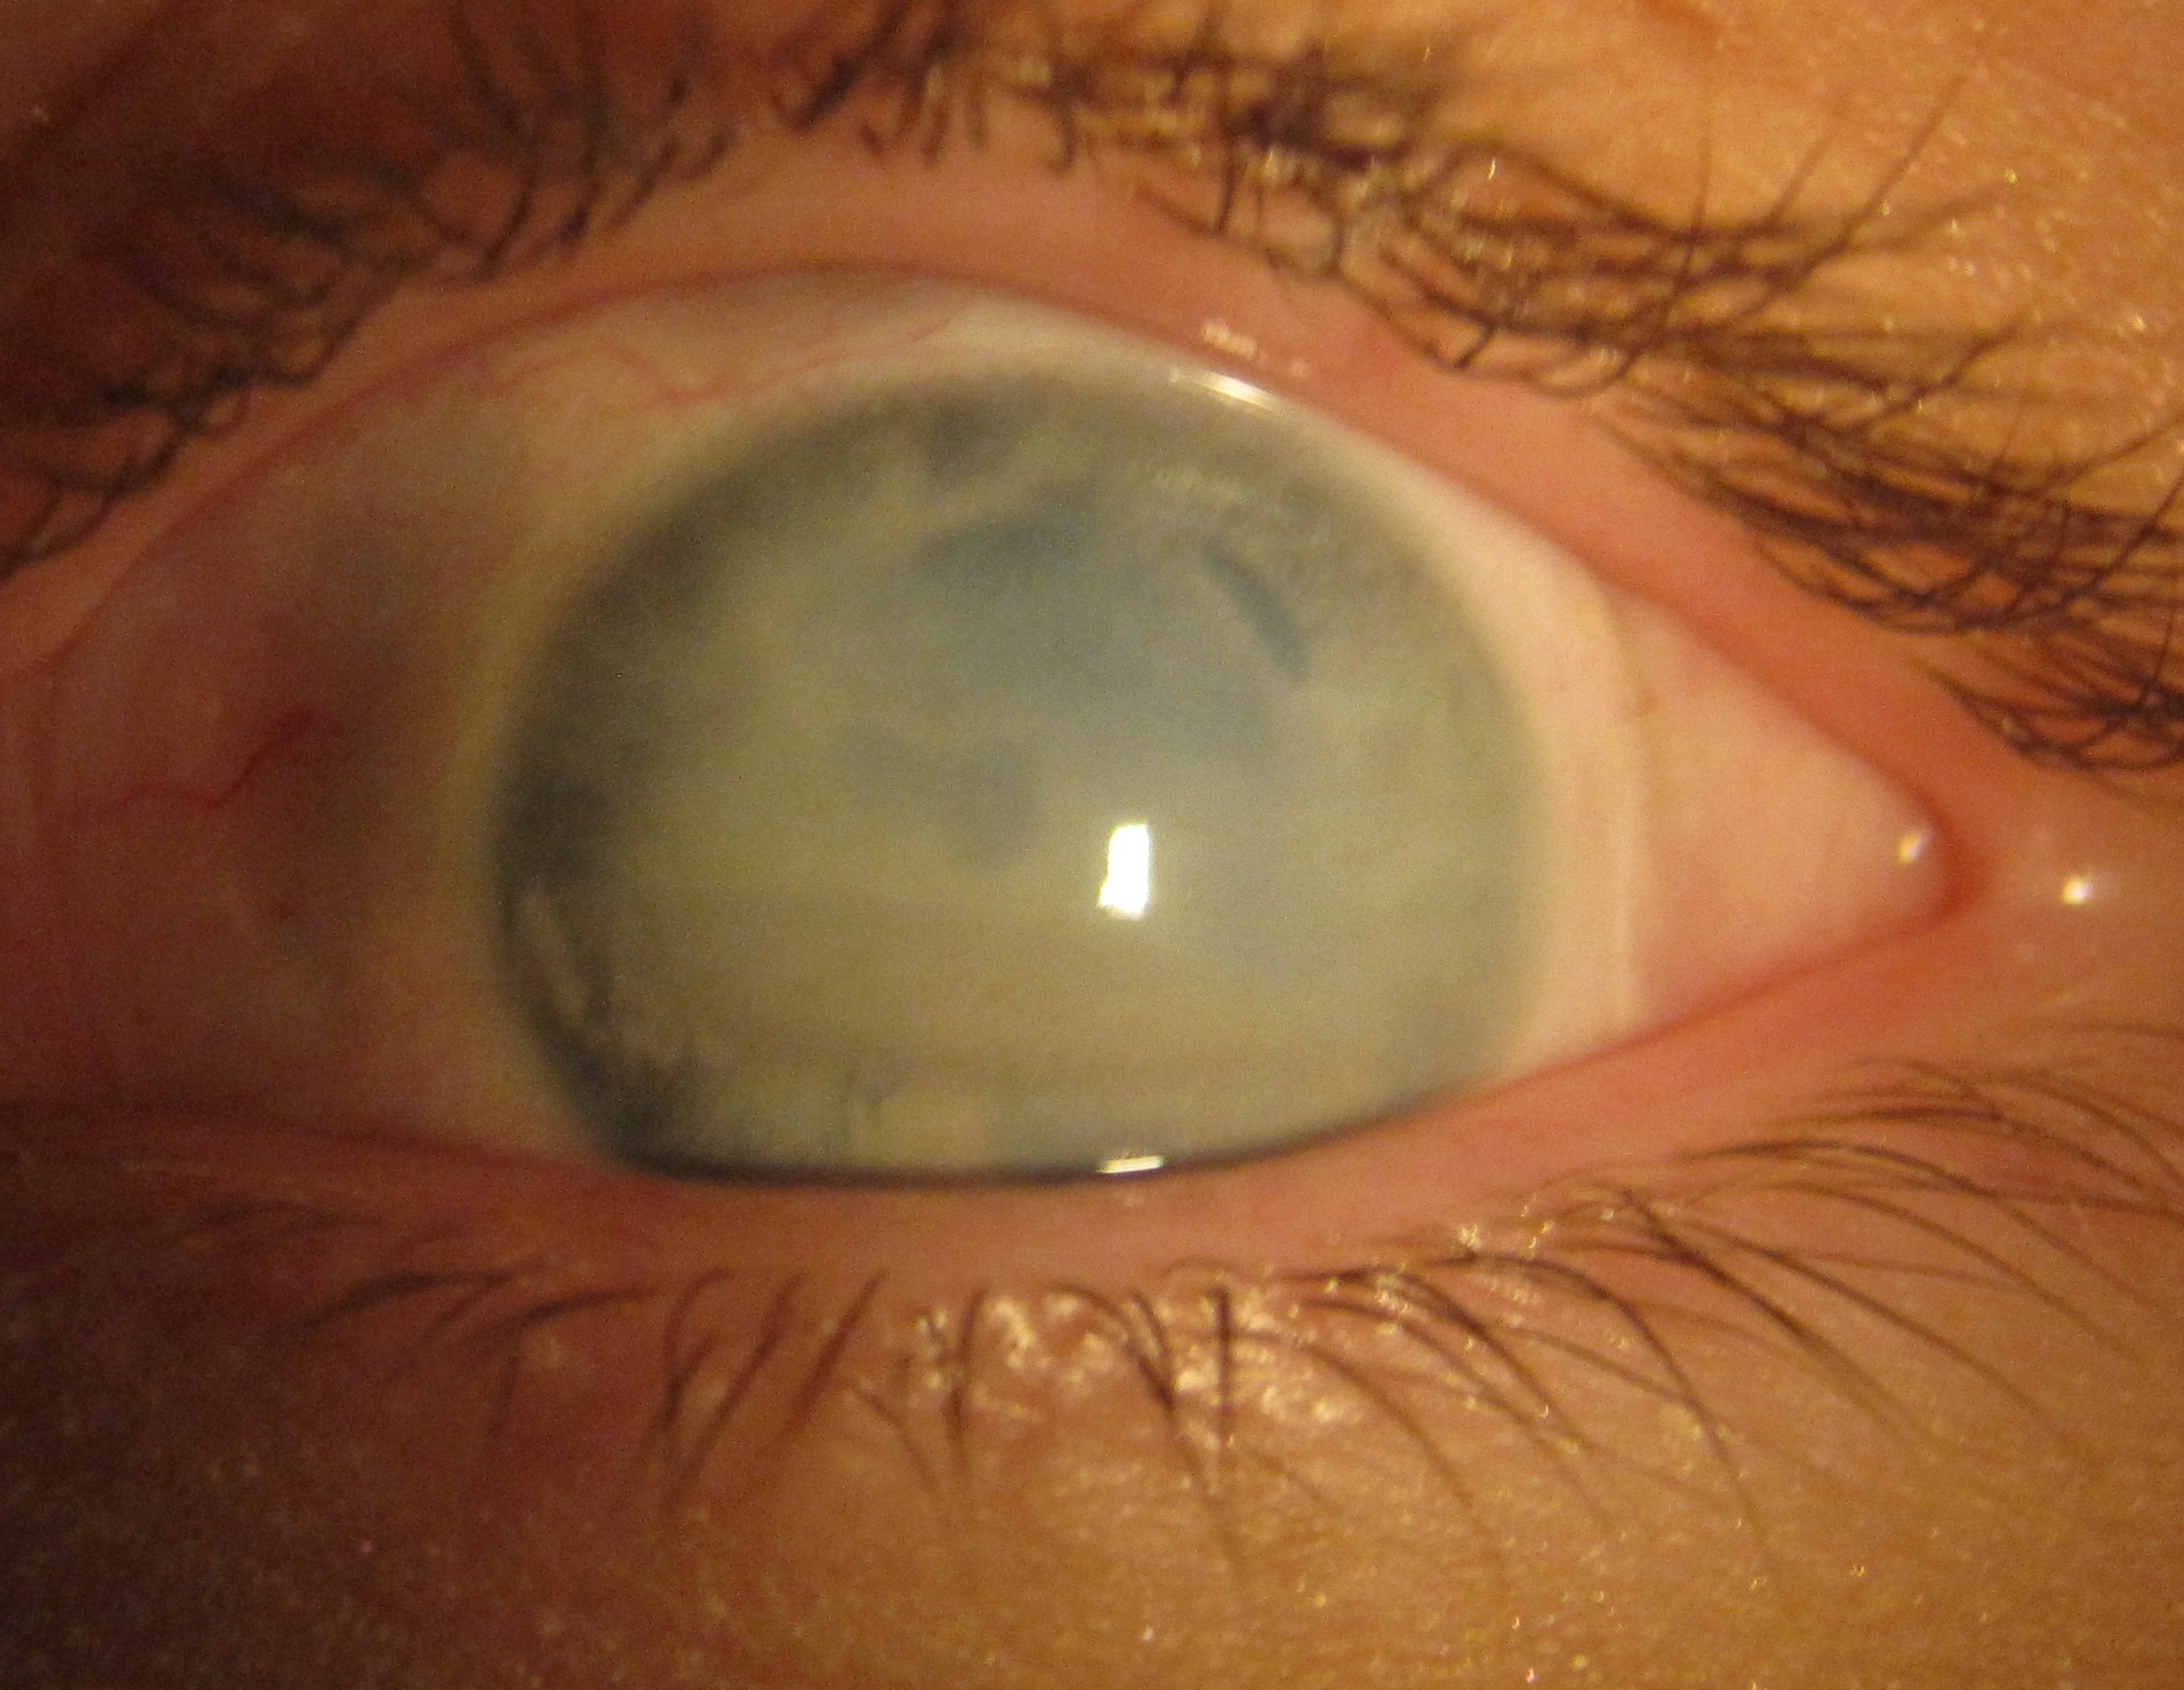 The Scleral Lens Center Page 2